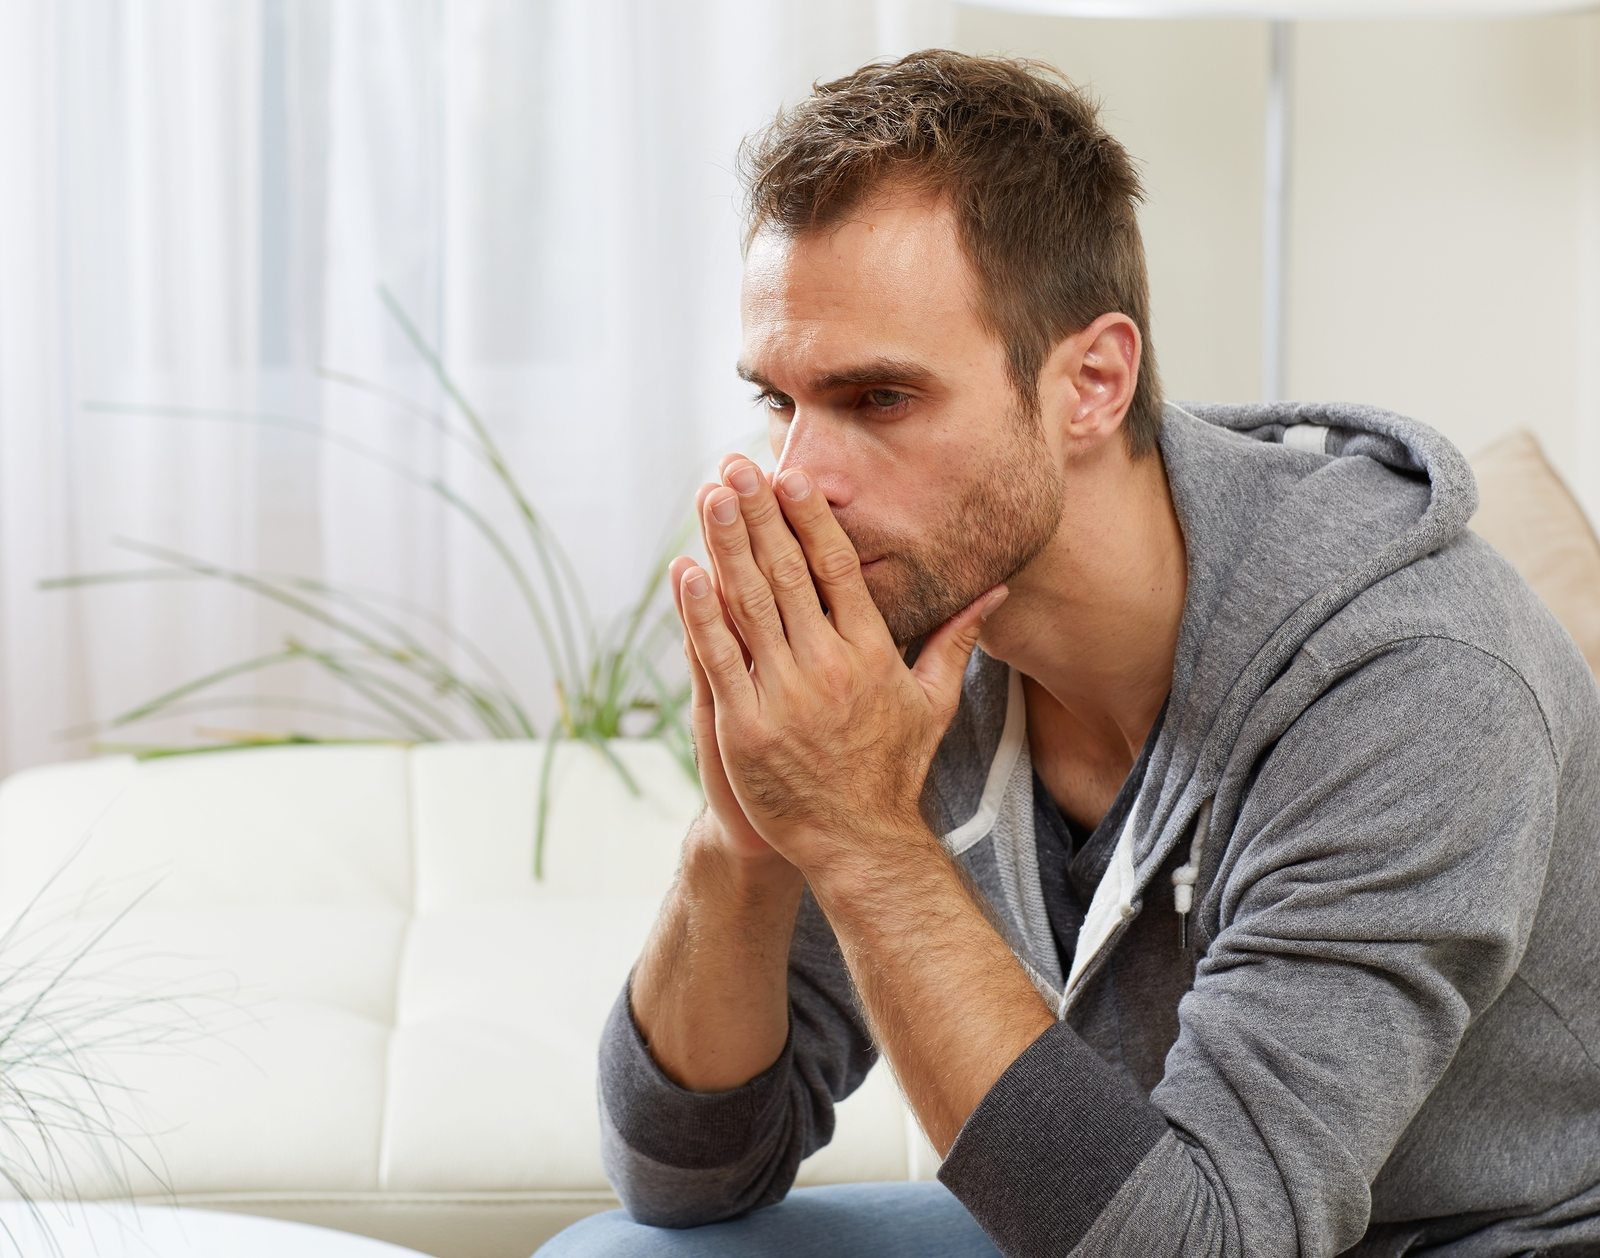 Anxious man with hands in front of face